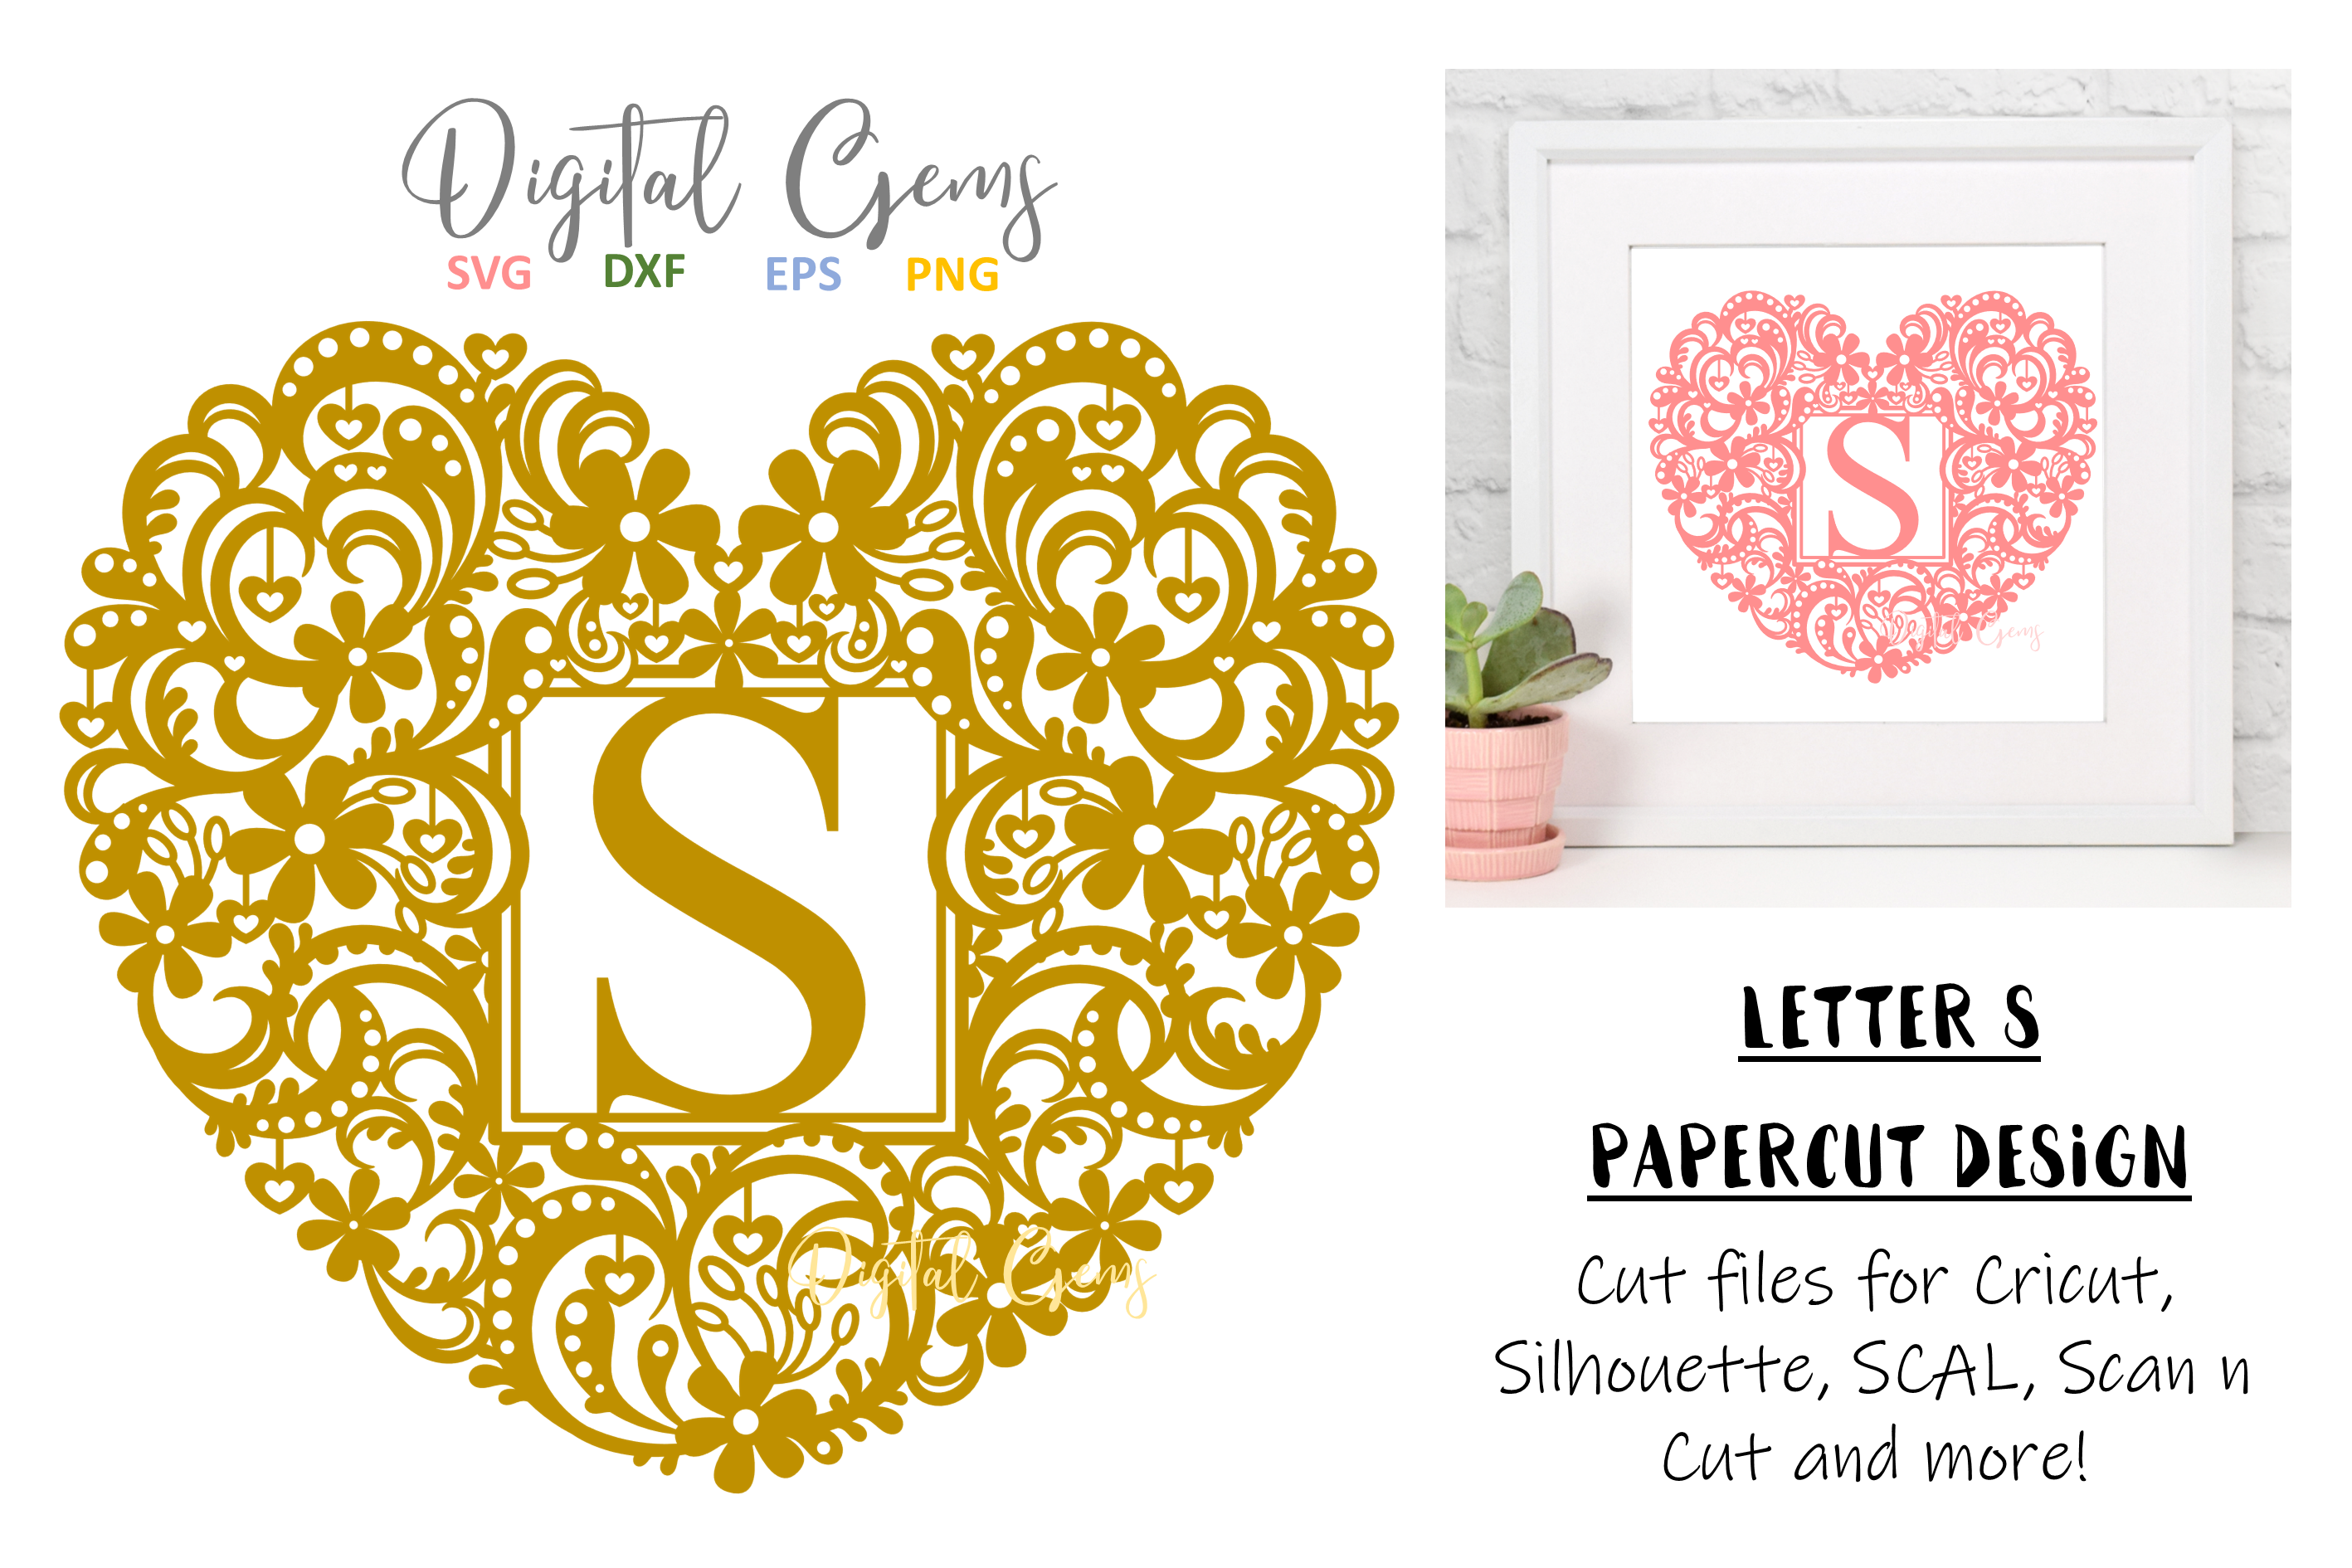 Letter S paper cut design. SVG / DXF / EPS / PNG files example image 1